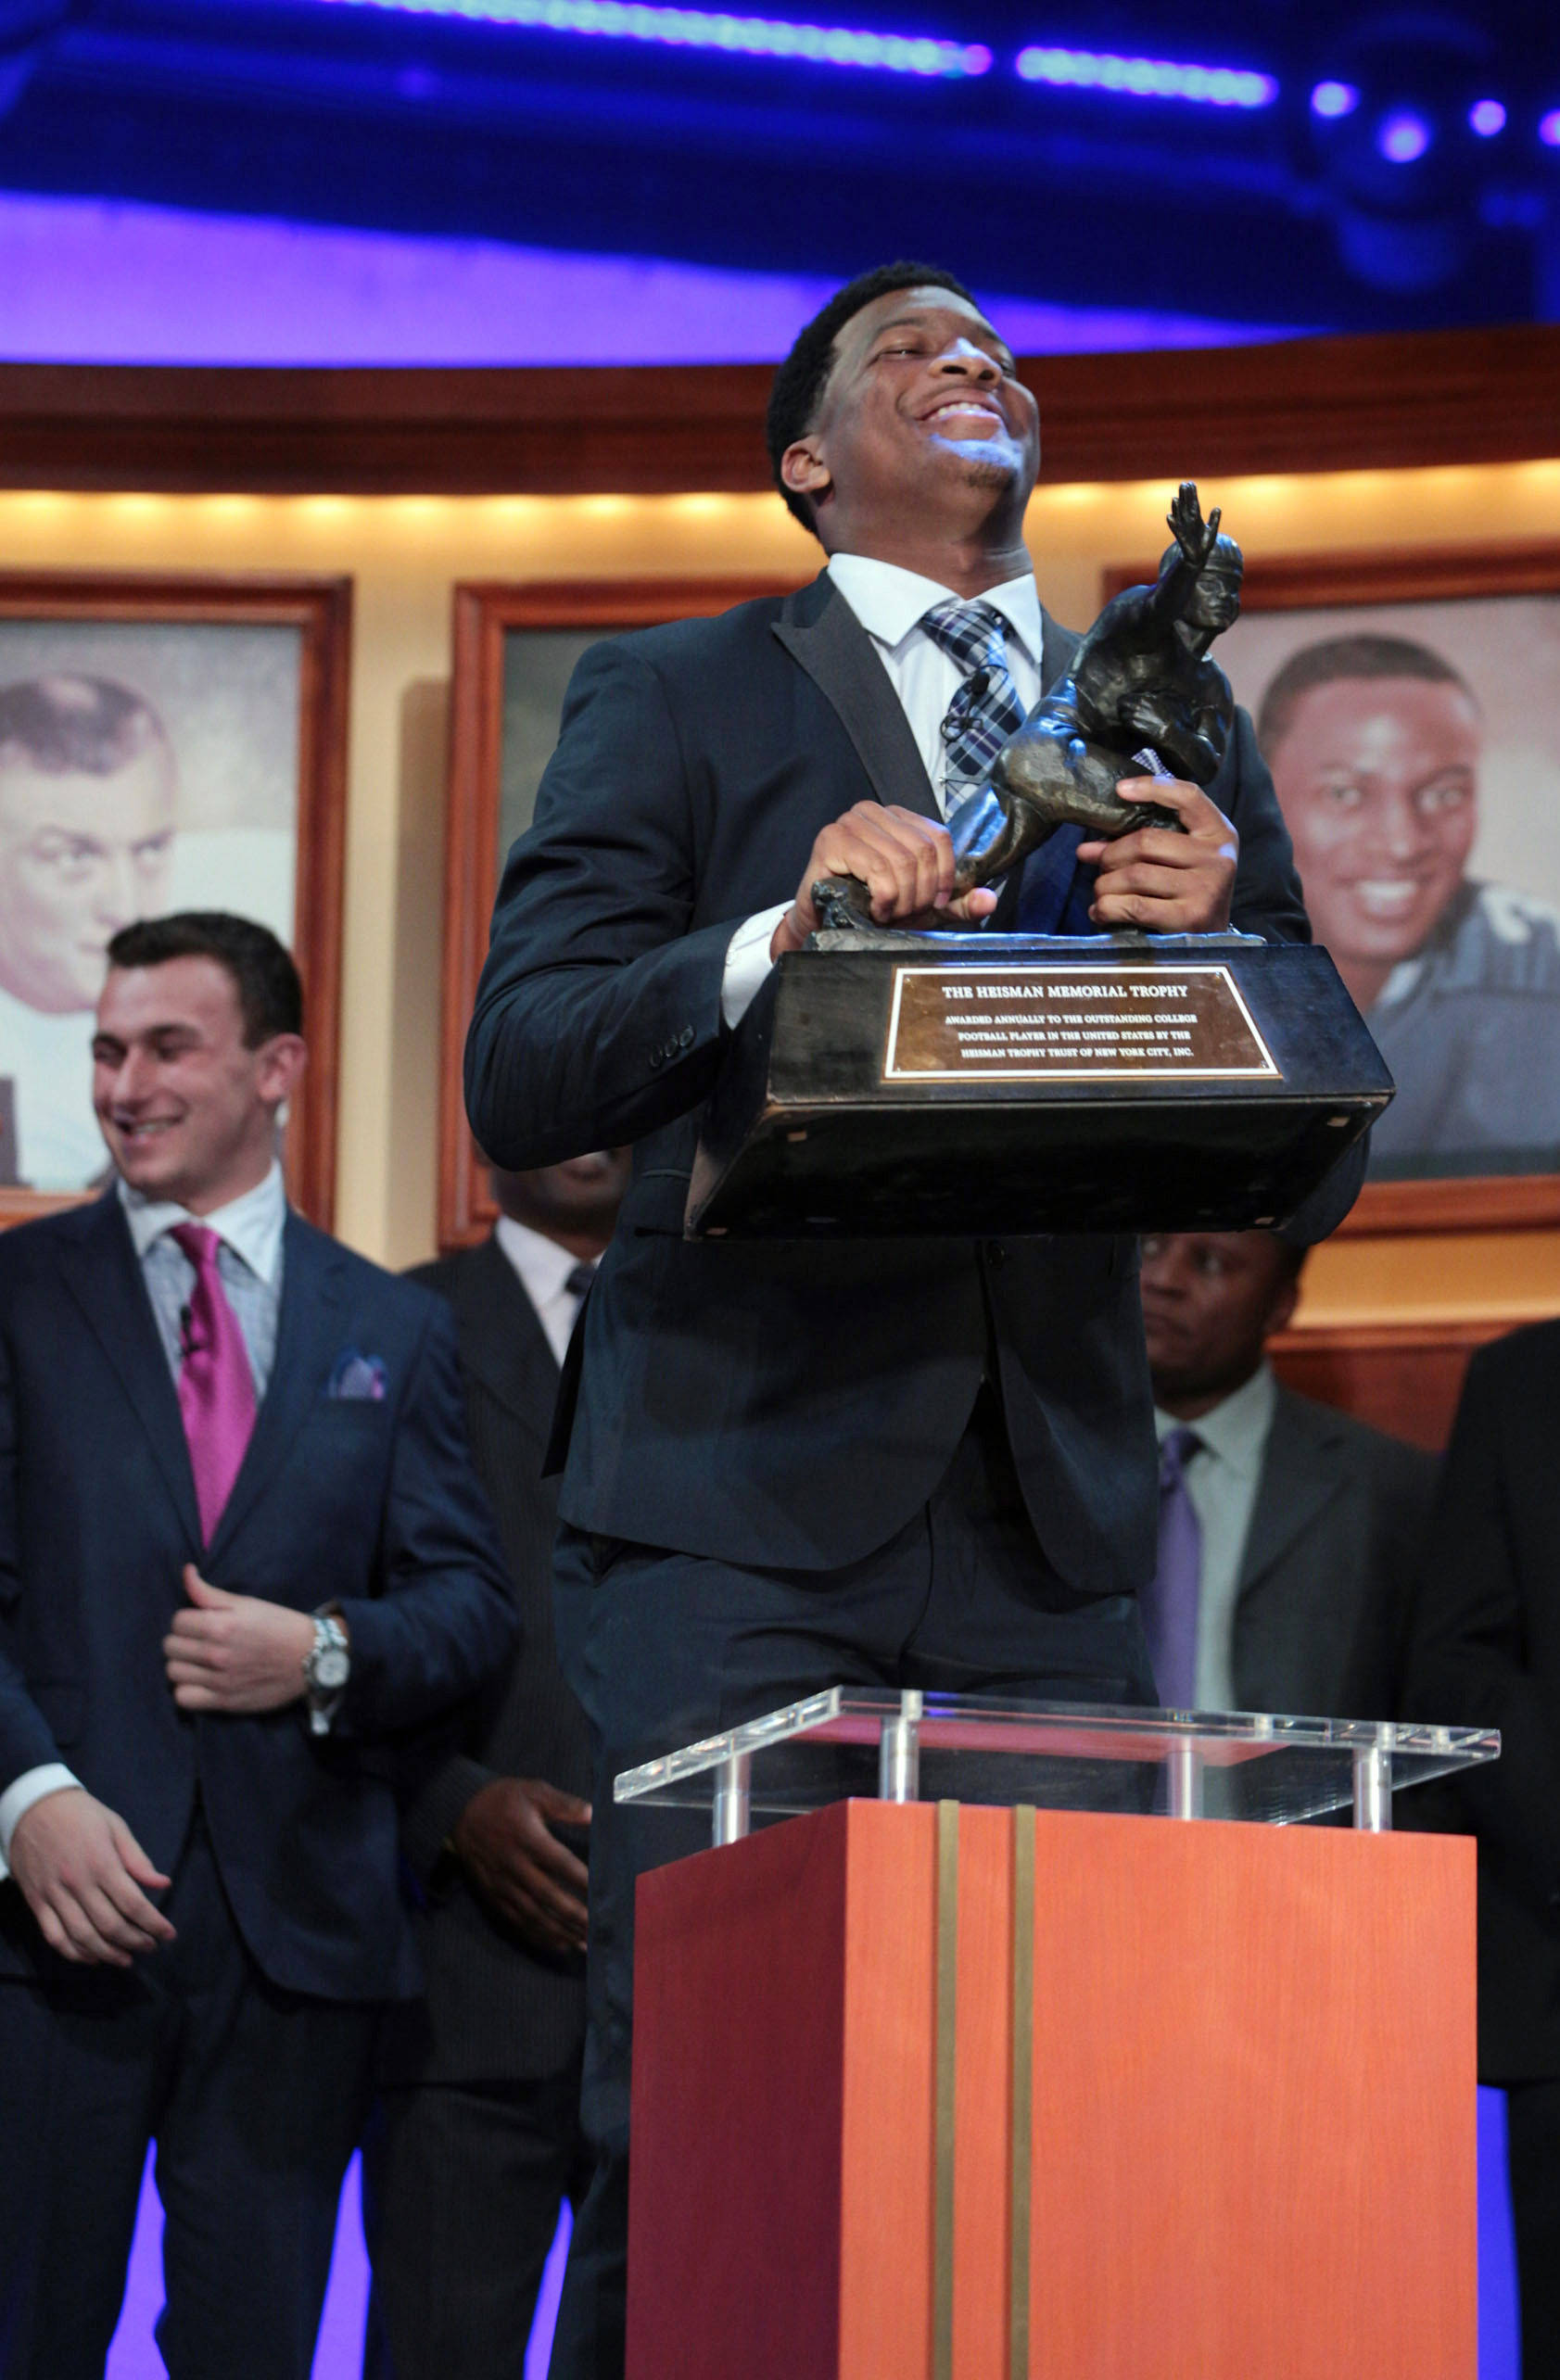 Dec 14, 2013; New York, NY, USA; Seminoles quarterback Jameis Winston reacts after being awarded the 2013 Heisman Trophy at the Best Buy Theatre in New York City. Kelly Kline/Heisman Trust/Handout Photo via USA TODAY Sports